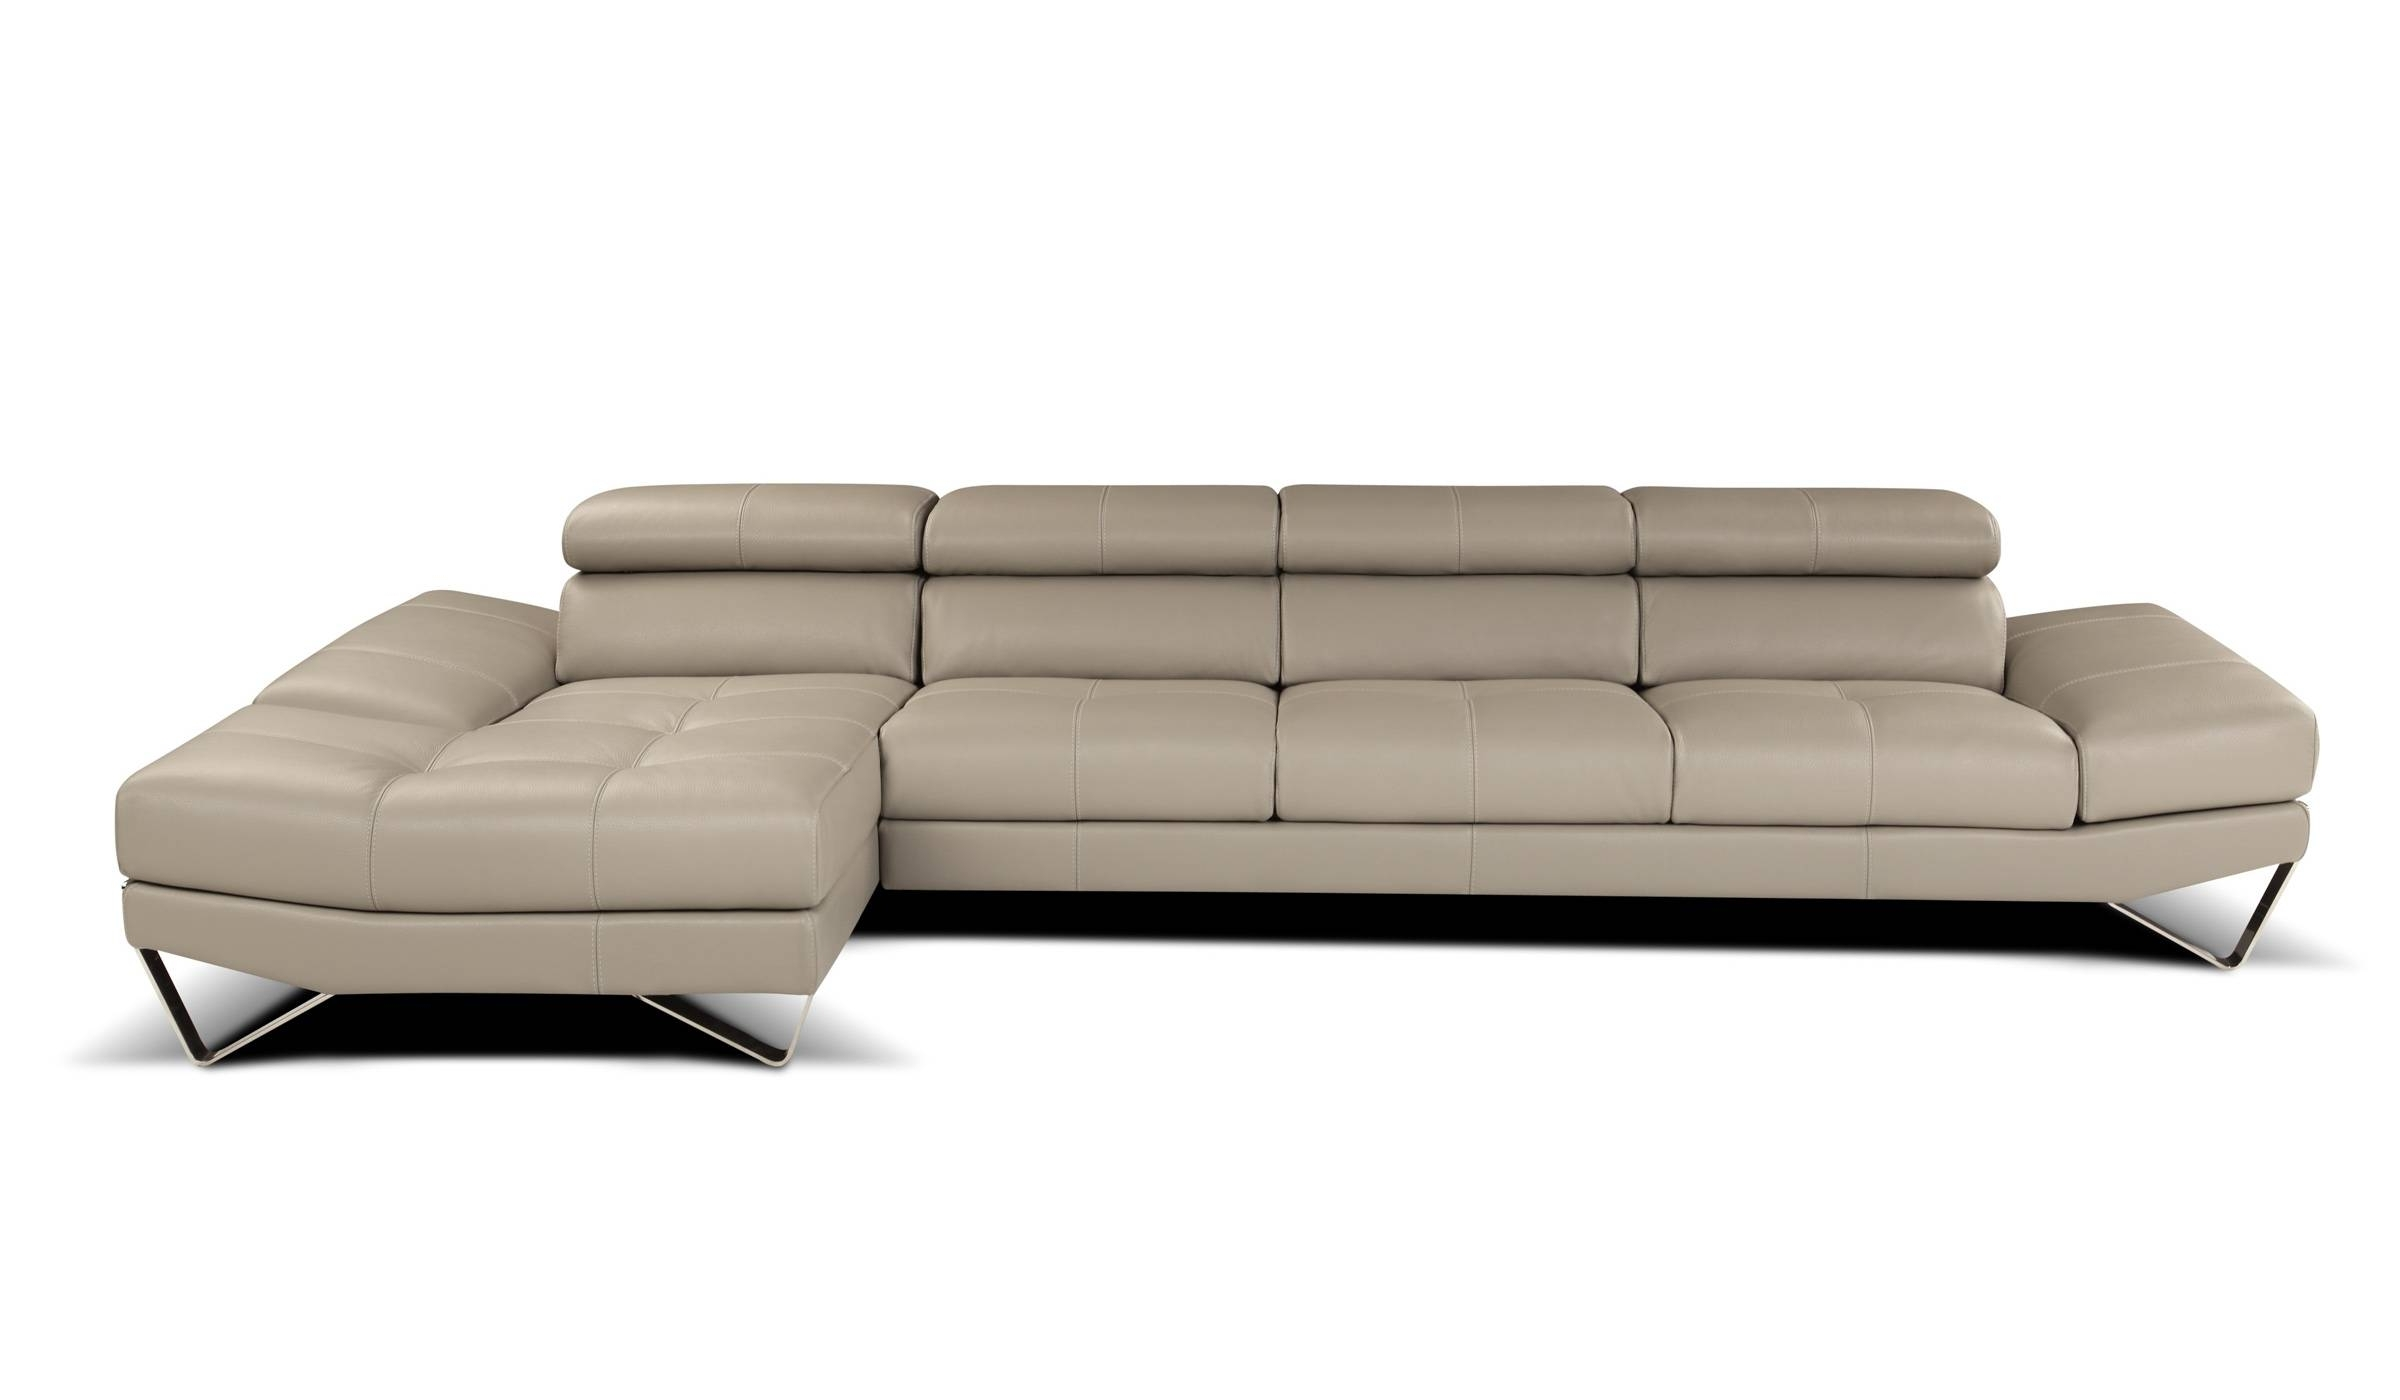 Widely Used High End Leather Sectional Sofas Regarding Sophisticated All Italian Leather Sectional Sofa Spokane (View 19 of 20)